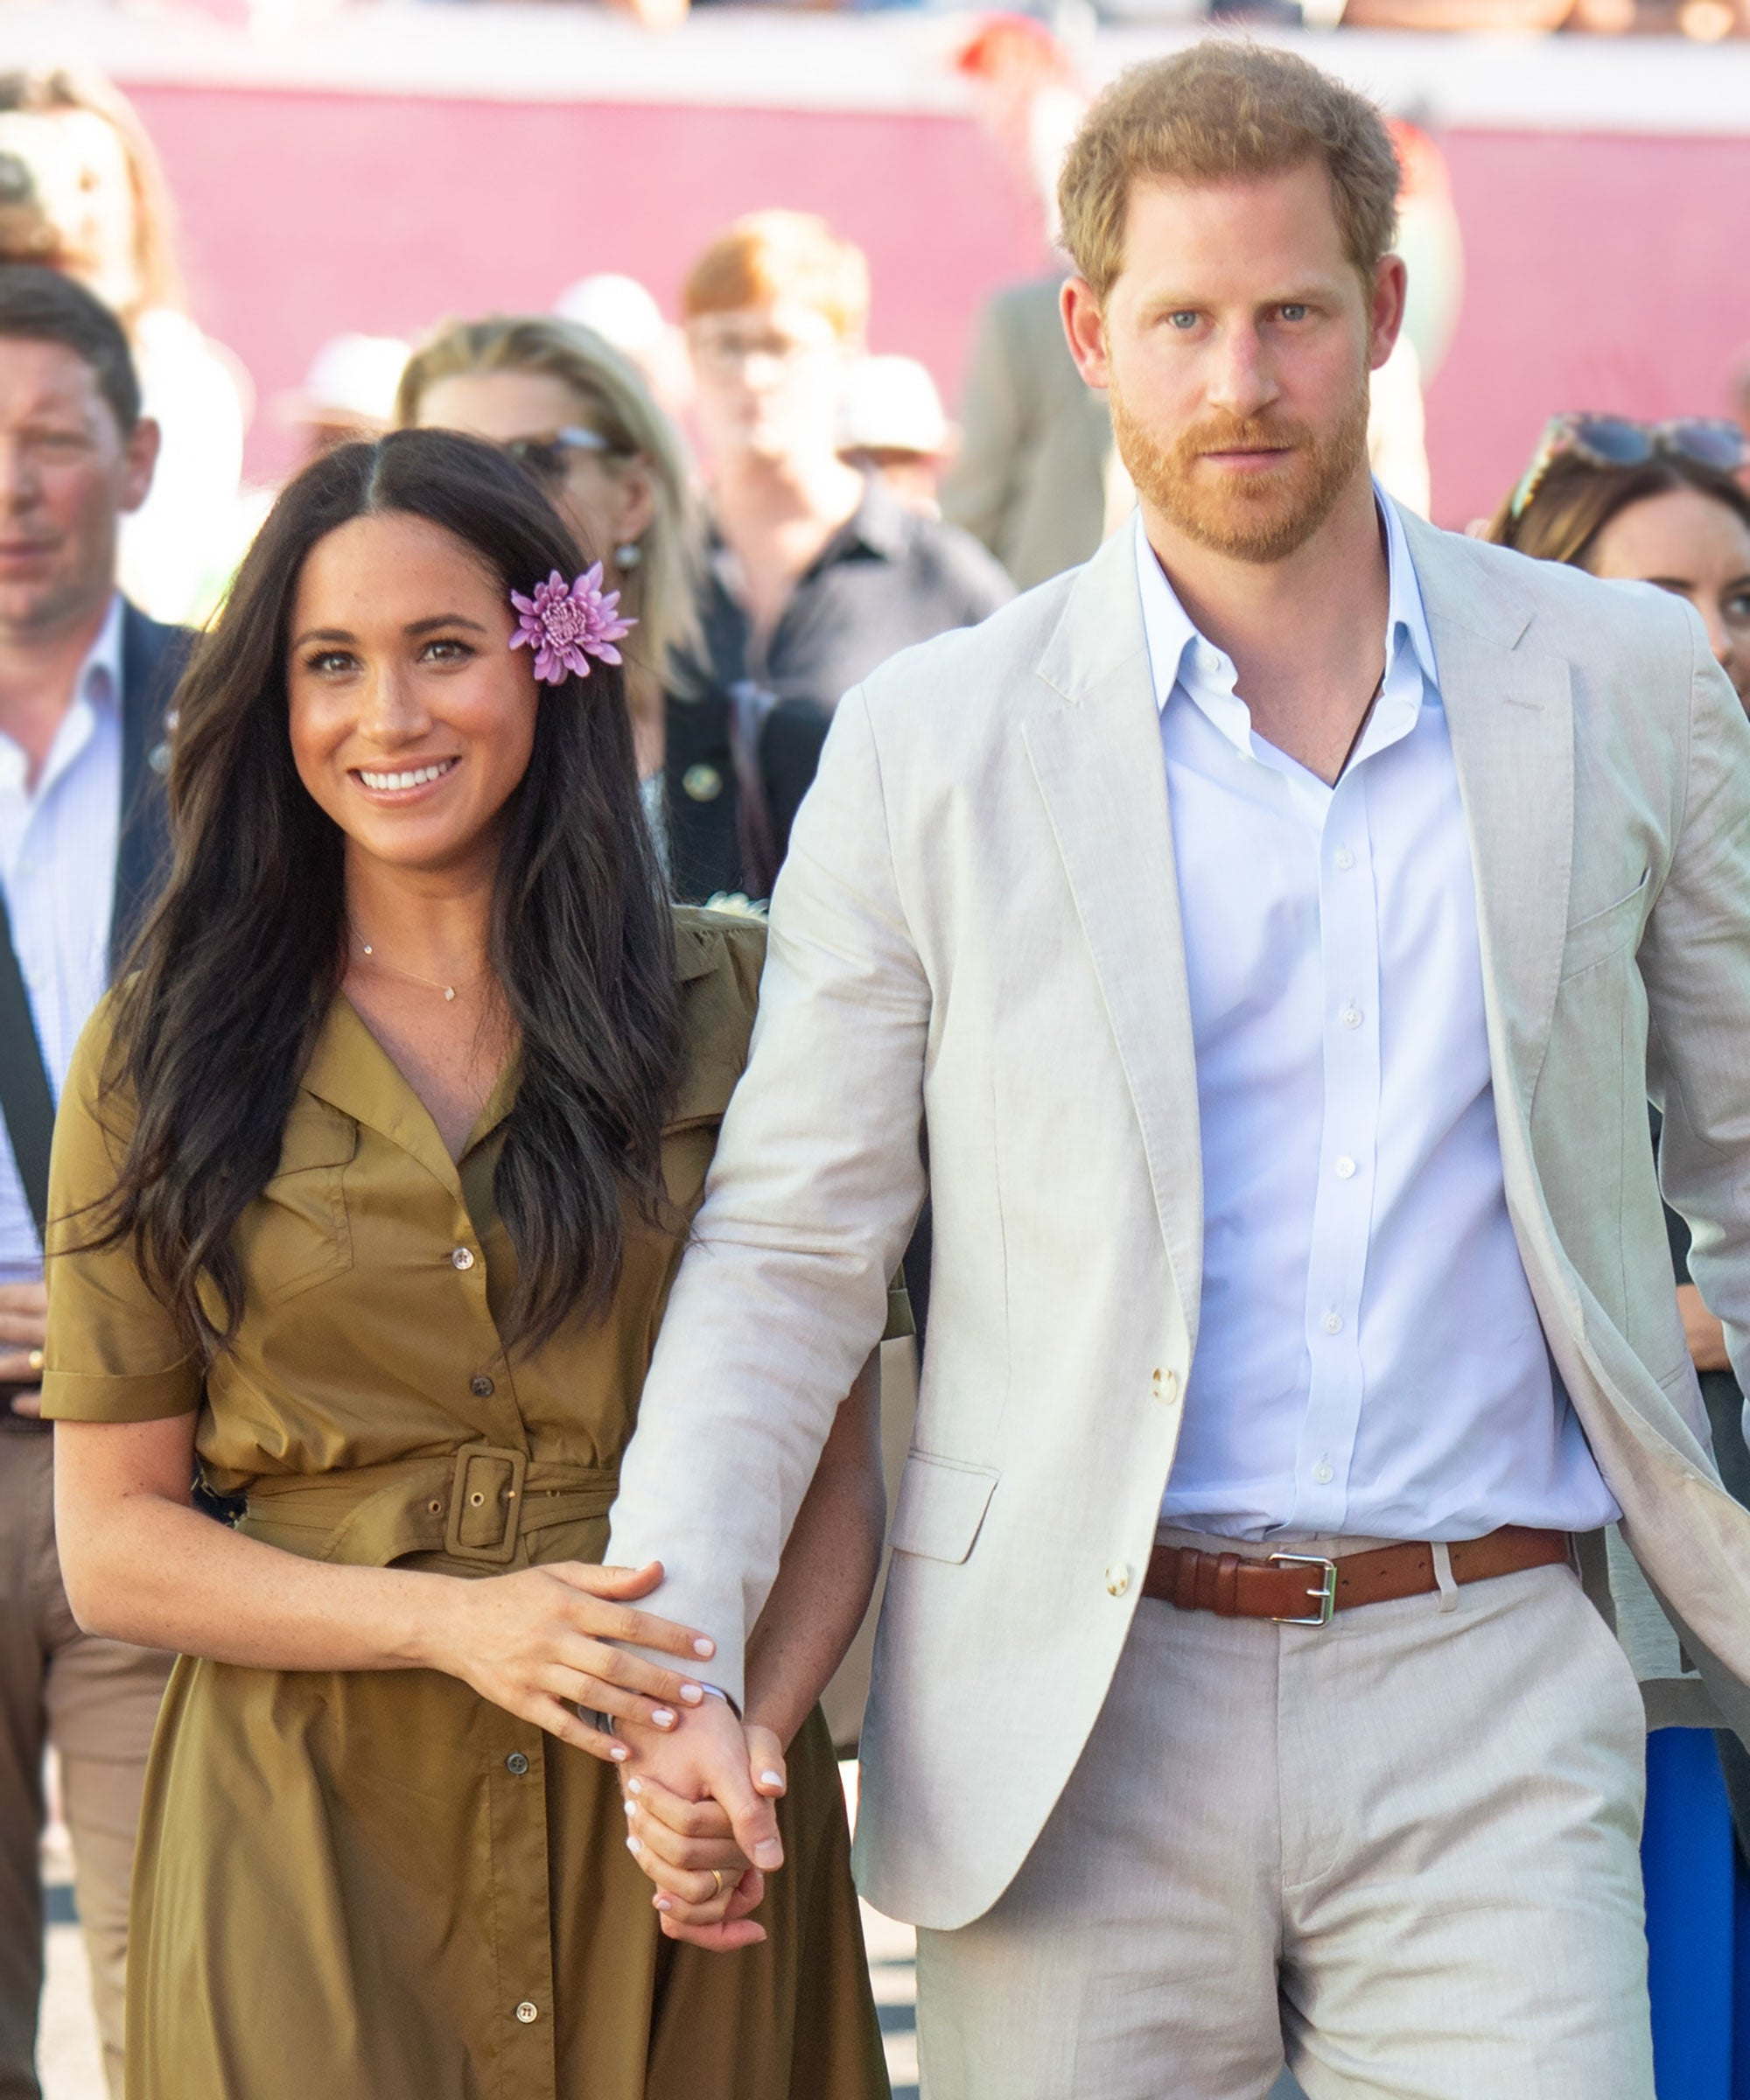 Prince Harry & Meghan Markle Will Leave Their HRH Titles Behind — But Not The Royal Family